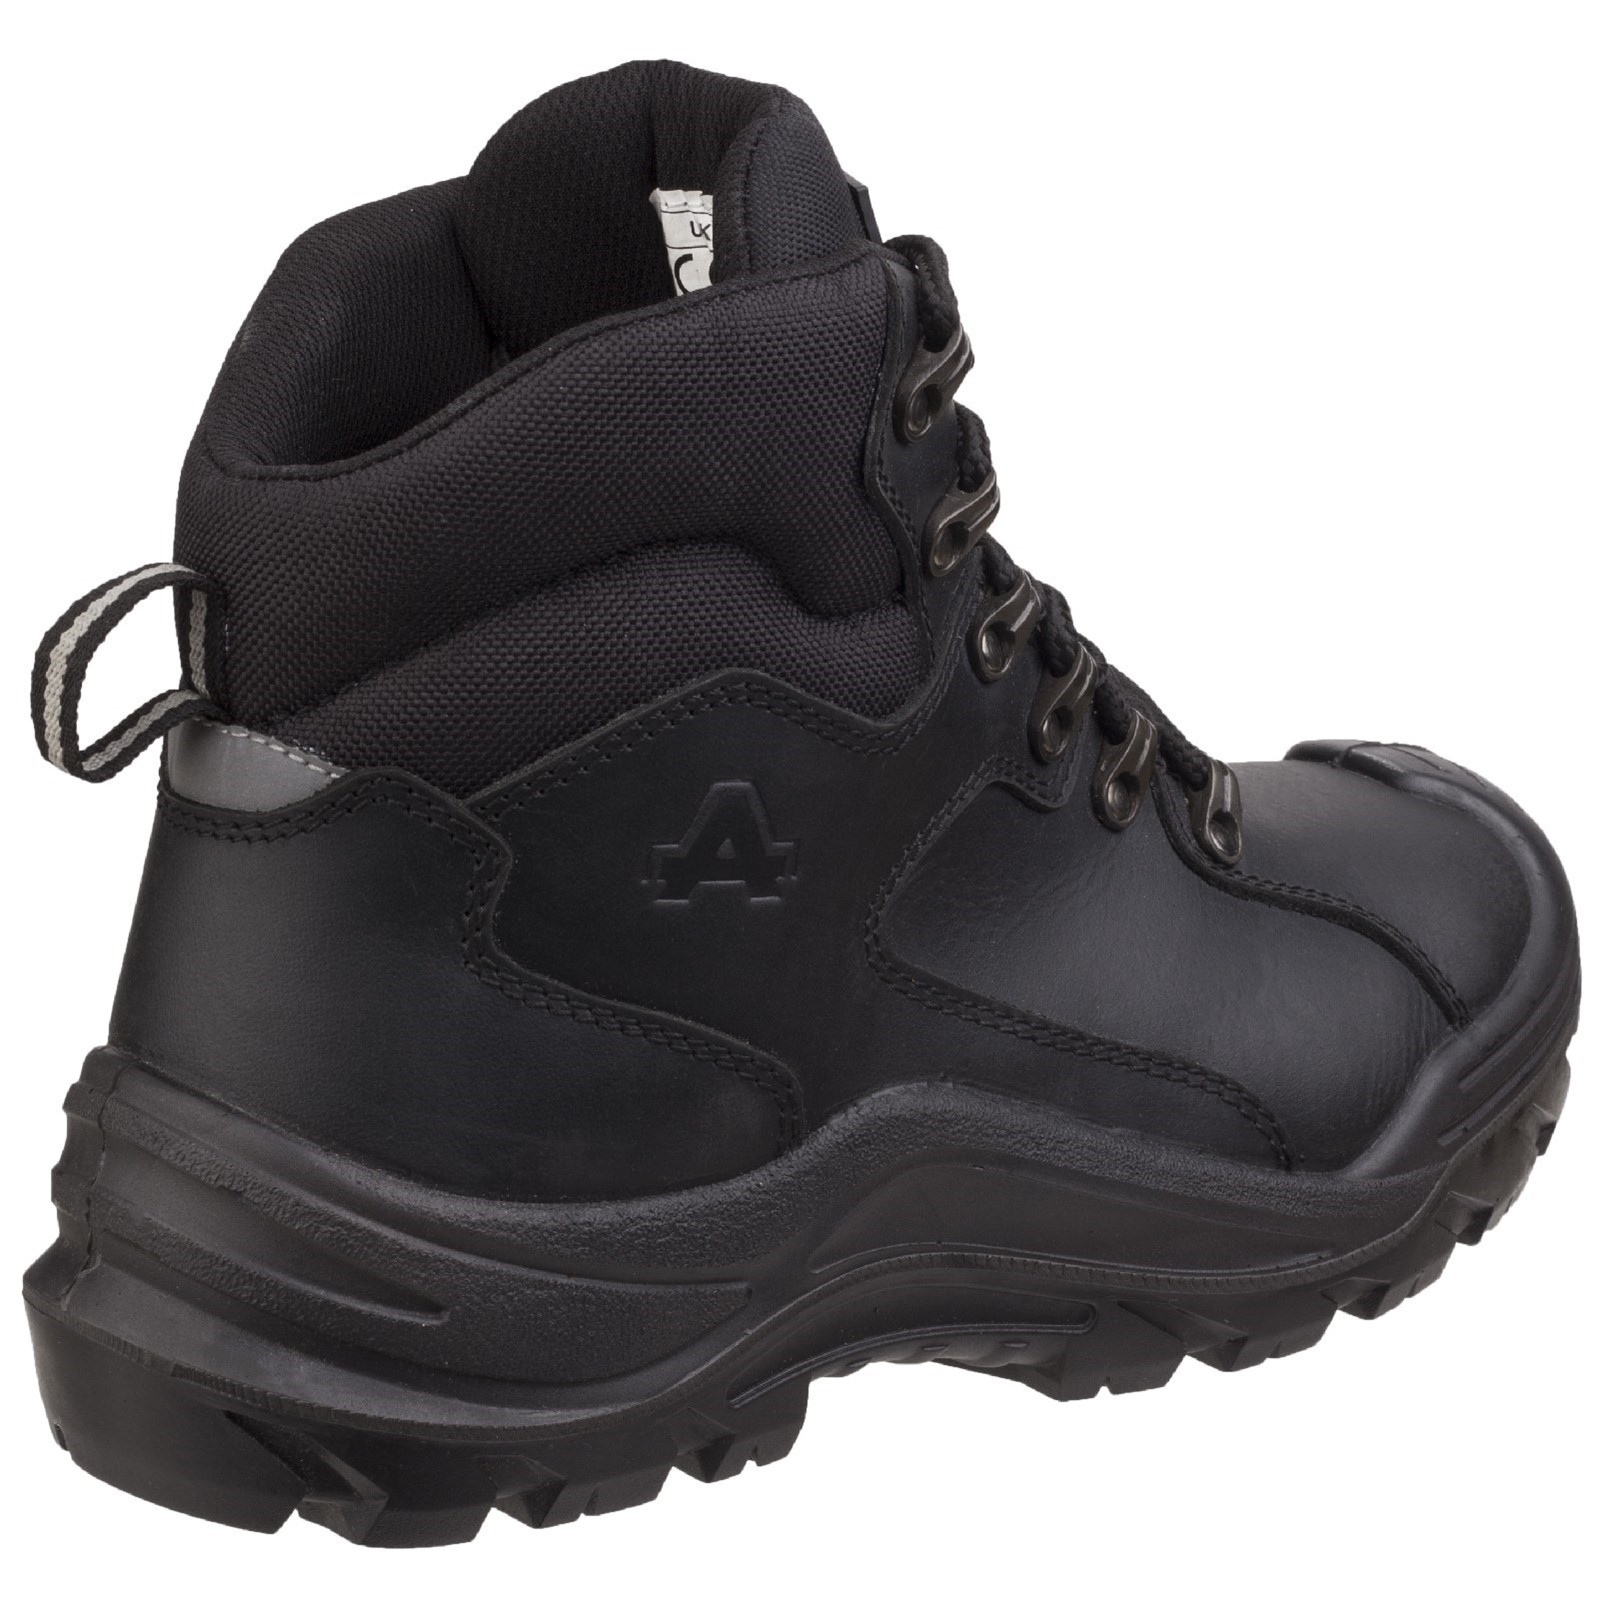 Ambler AS202 Water Water Water Resistant Comfortable Full Grain Leather Safety botas a8aaab